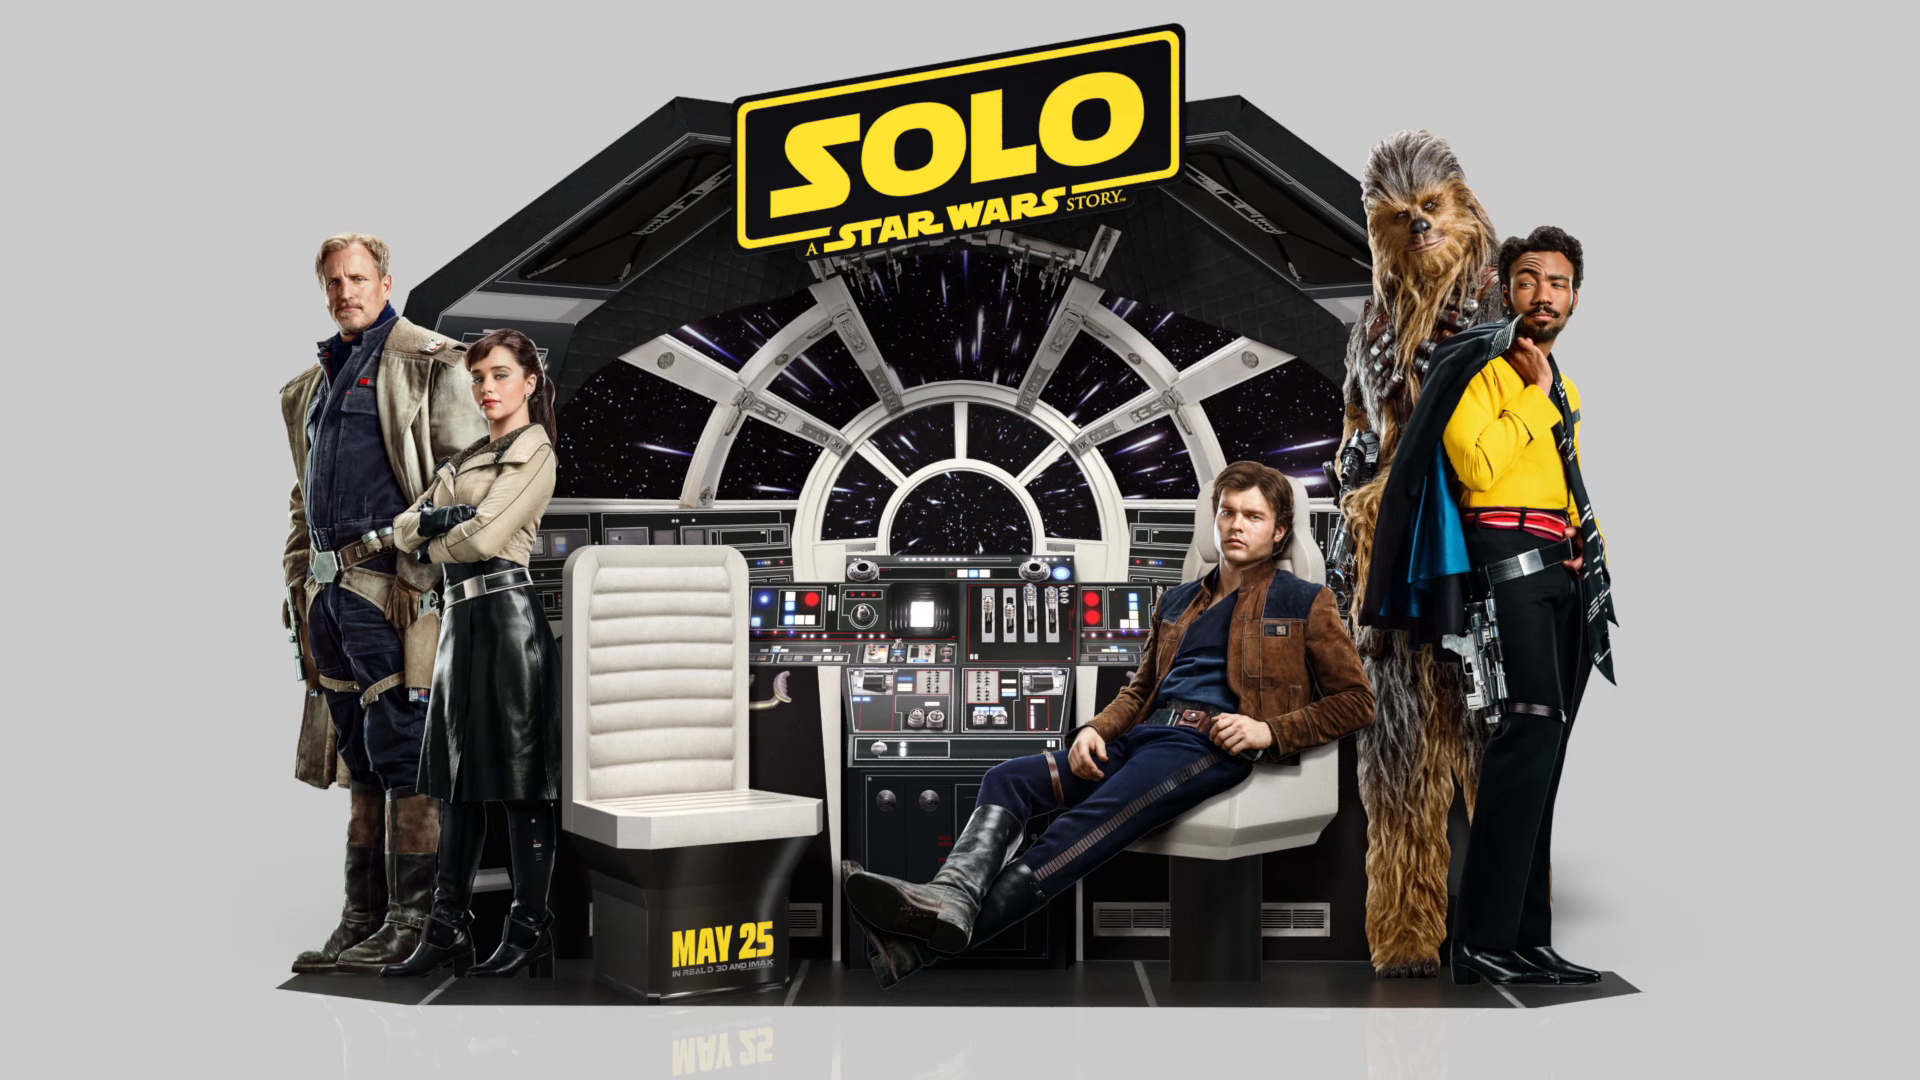 Thumbnail for Solo: A Star Wars Story In-Theatre Standee